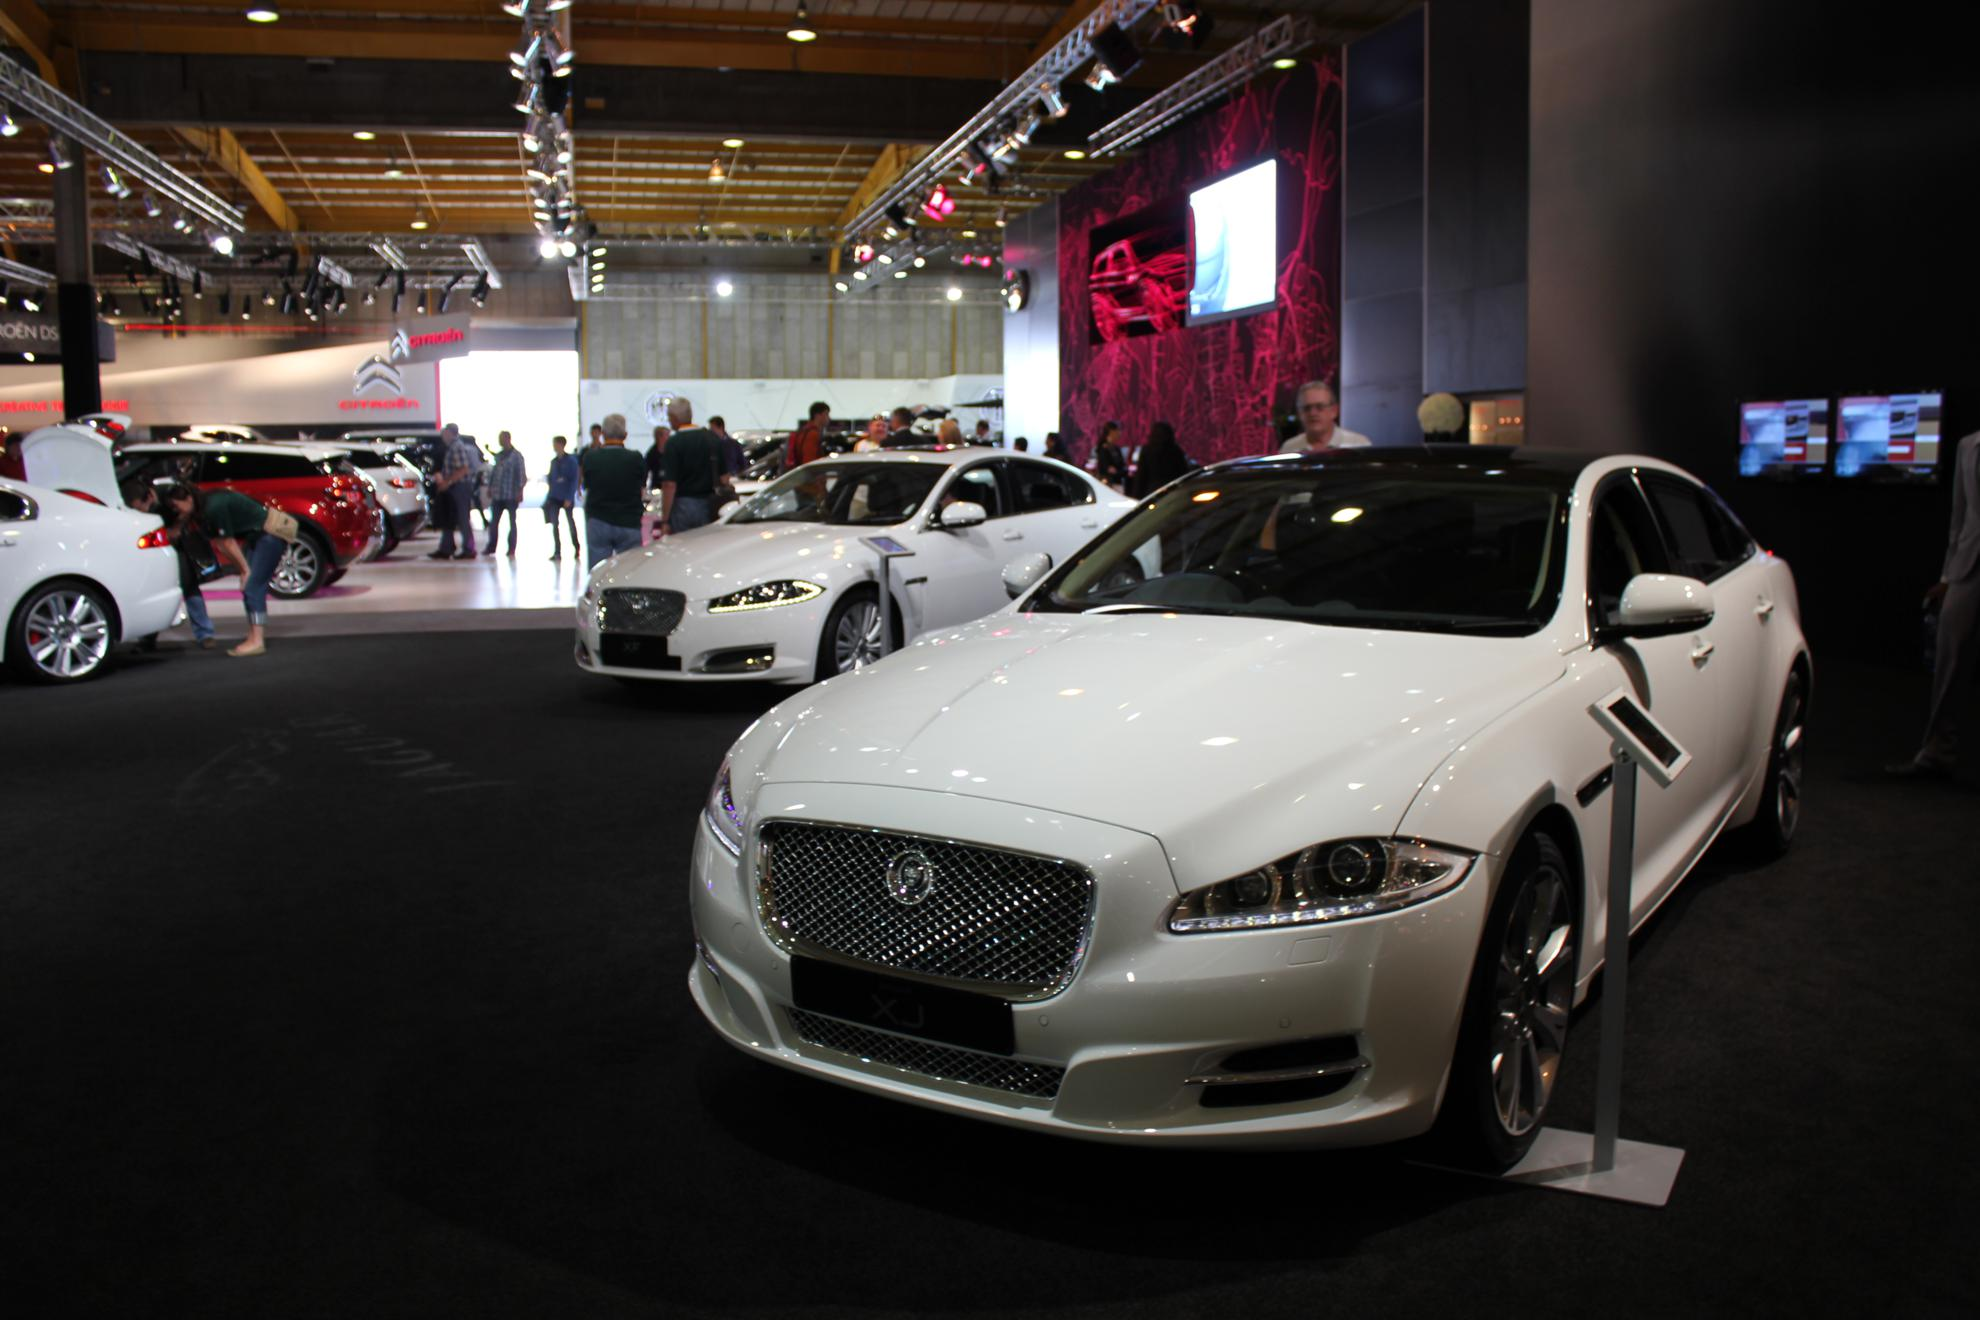 Jaguar at the Johannesburg Motor Show 2011